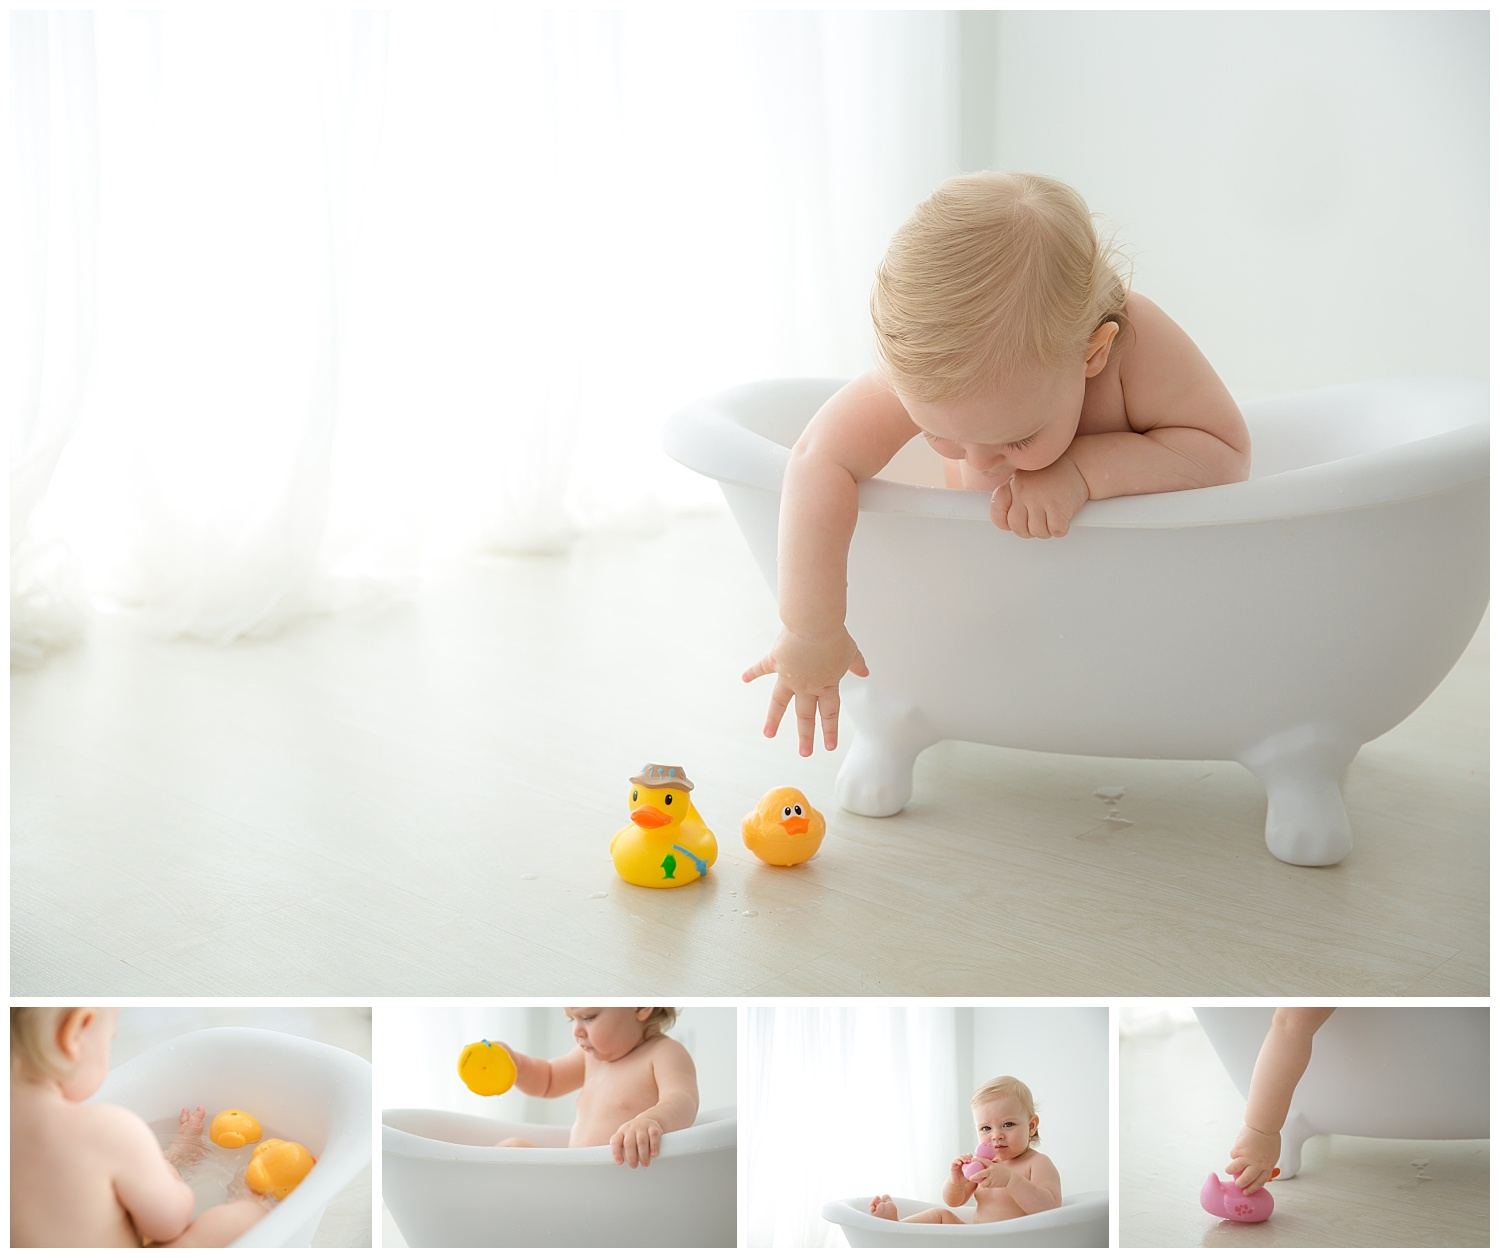 baby girl reaching for her duckies outside of claw foot tub in moorestown new jersey photo studio